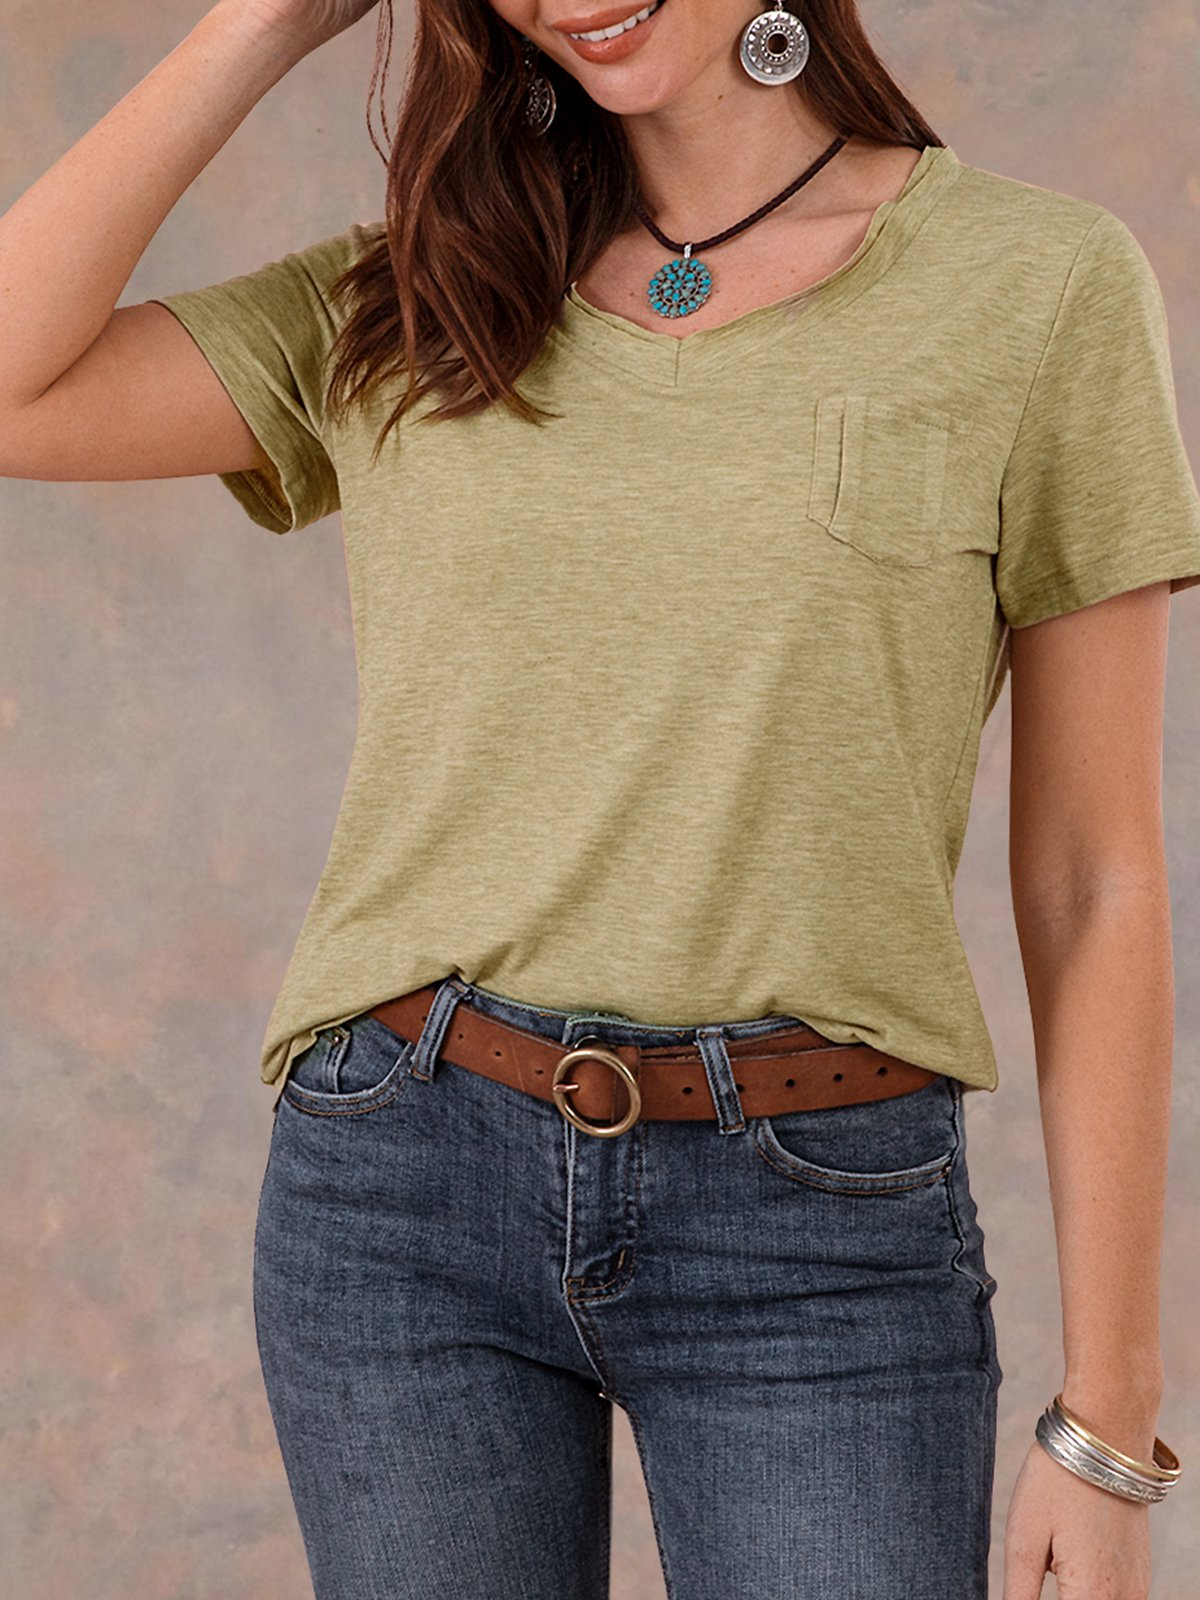 Clothing & Accessories Roselinlin Short Sleeve Lightgreen Women Tops Basic Knitted Crew Neck Pockets Casual Tops